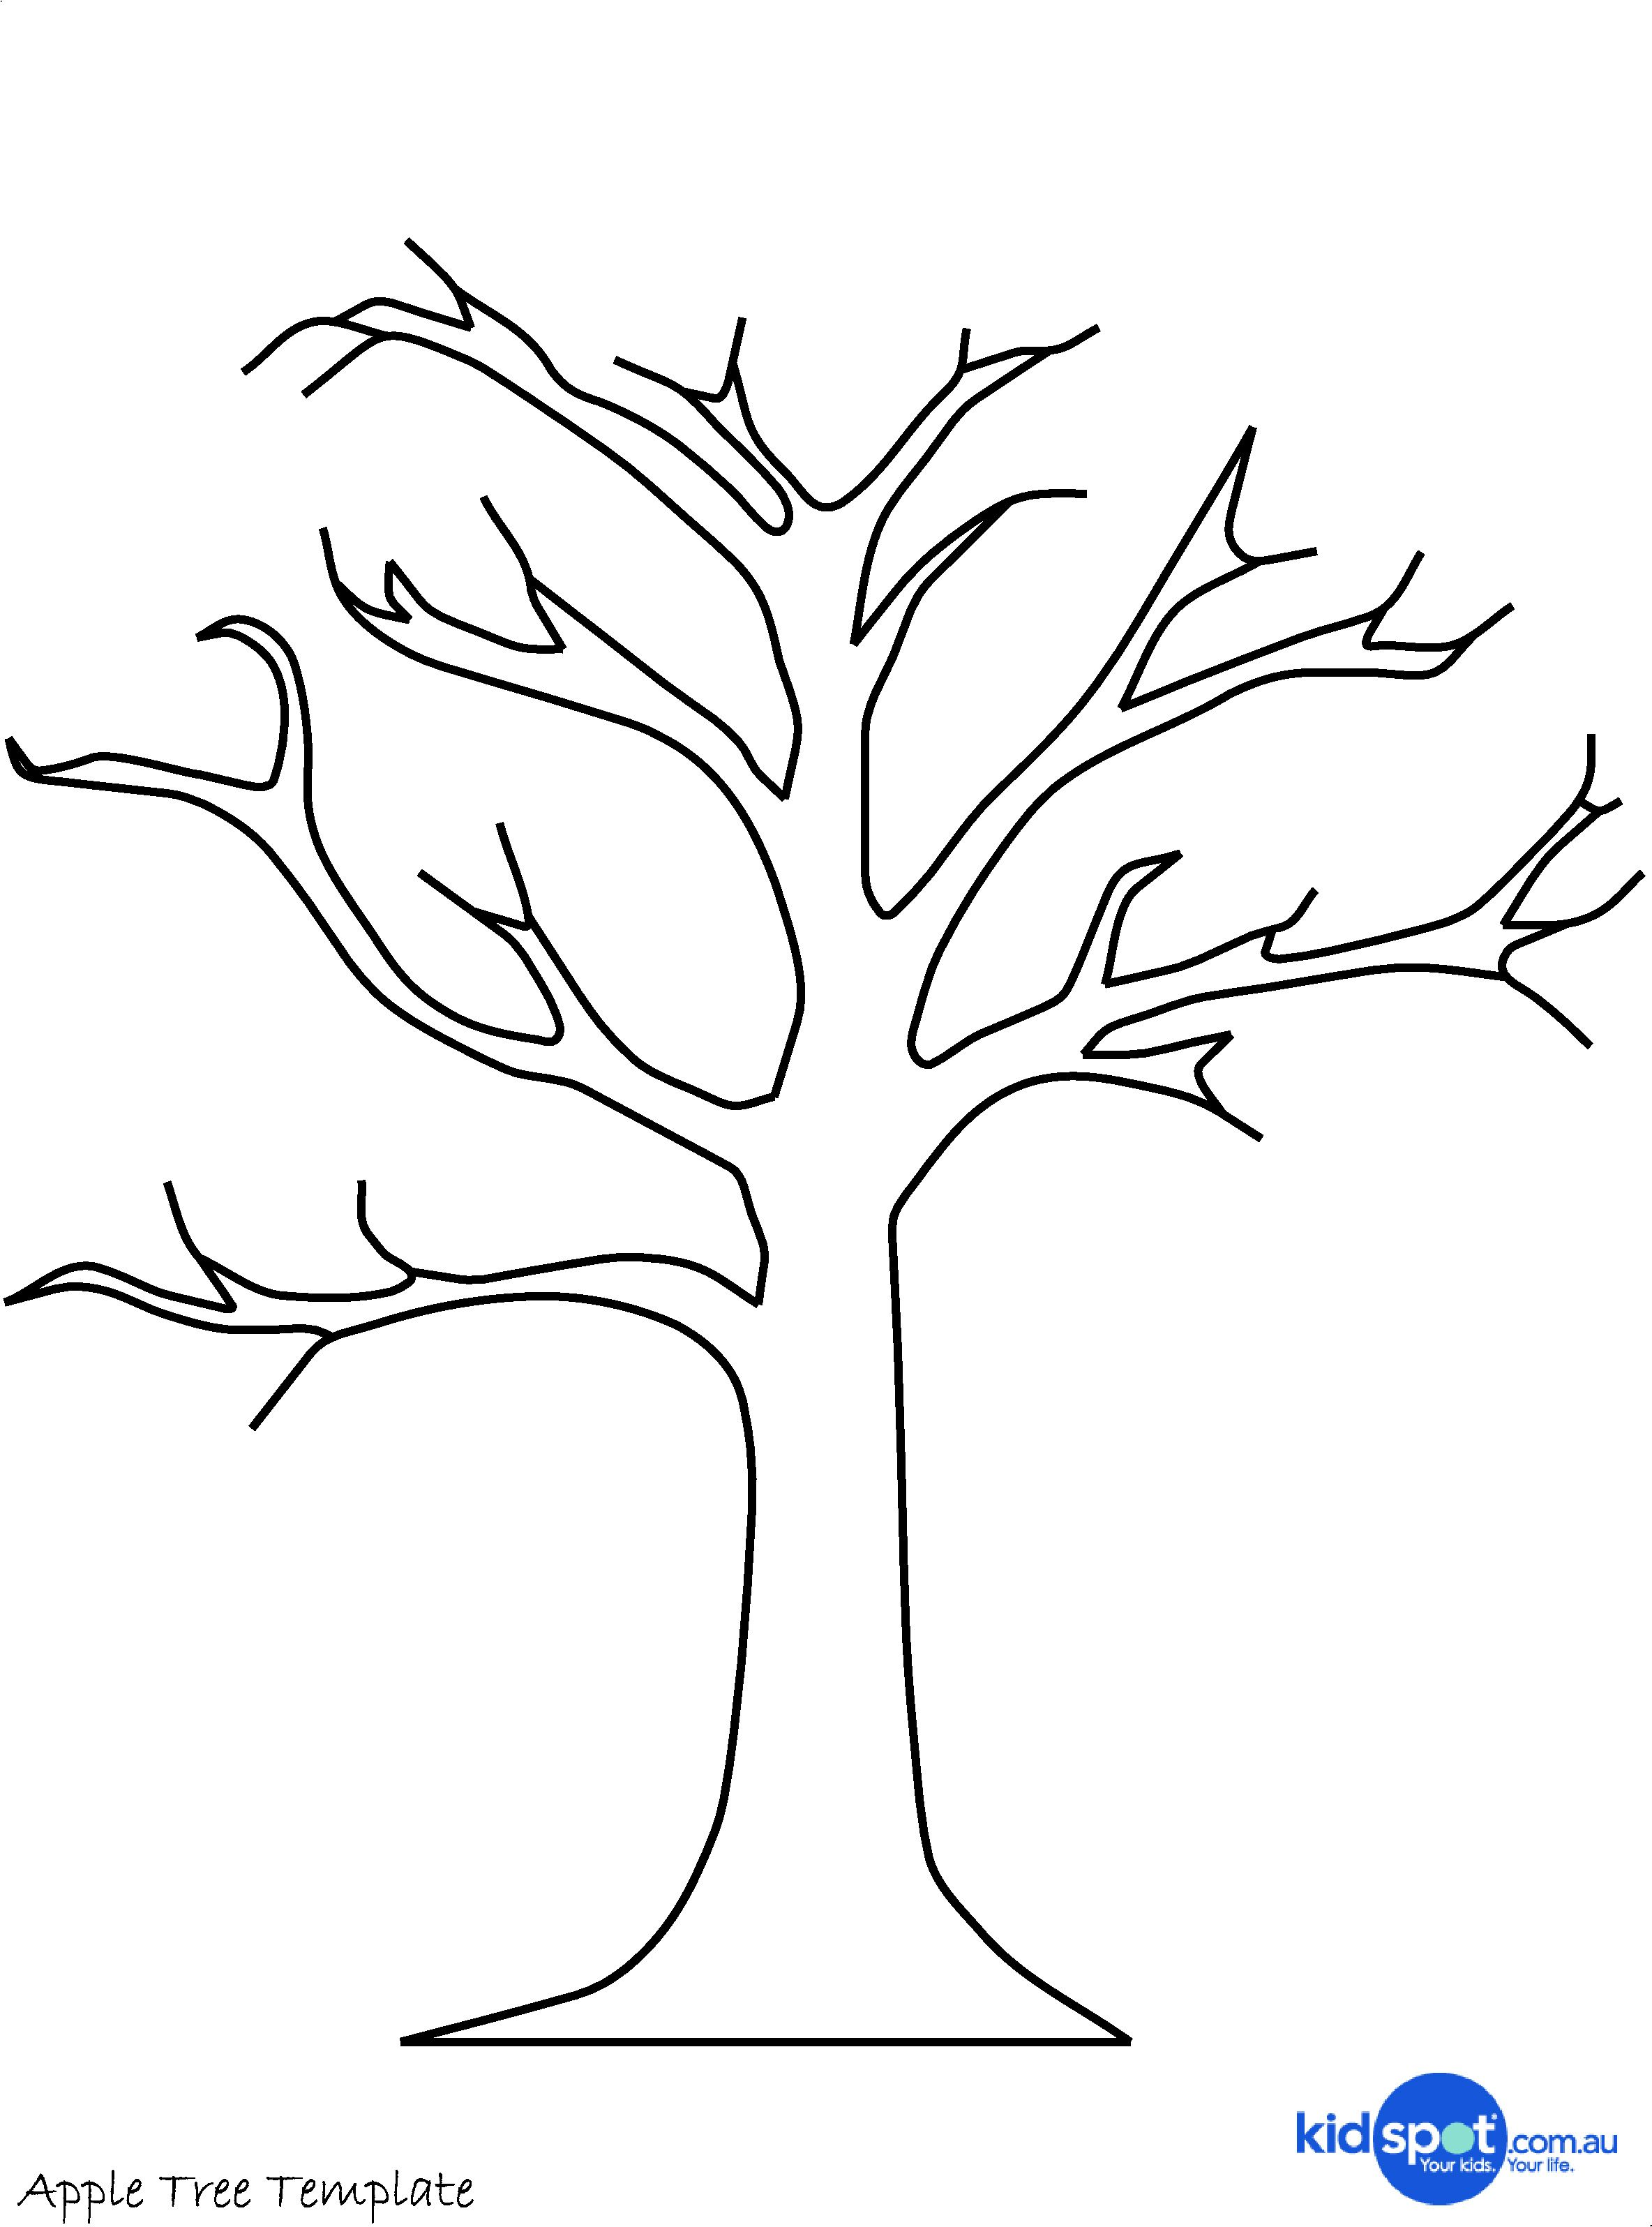 Free Printable Tree Template 6iy5aeknt Templates Station In 2020